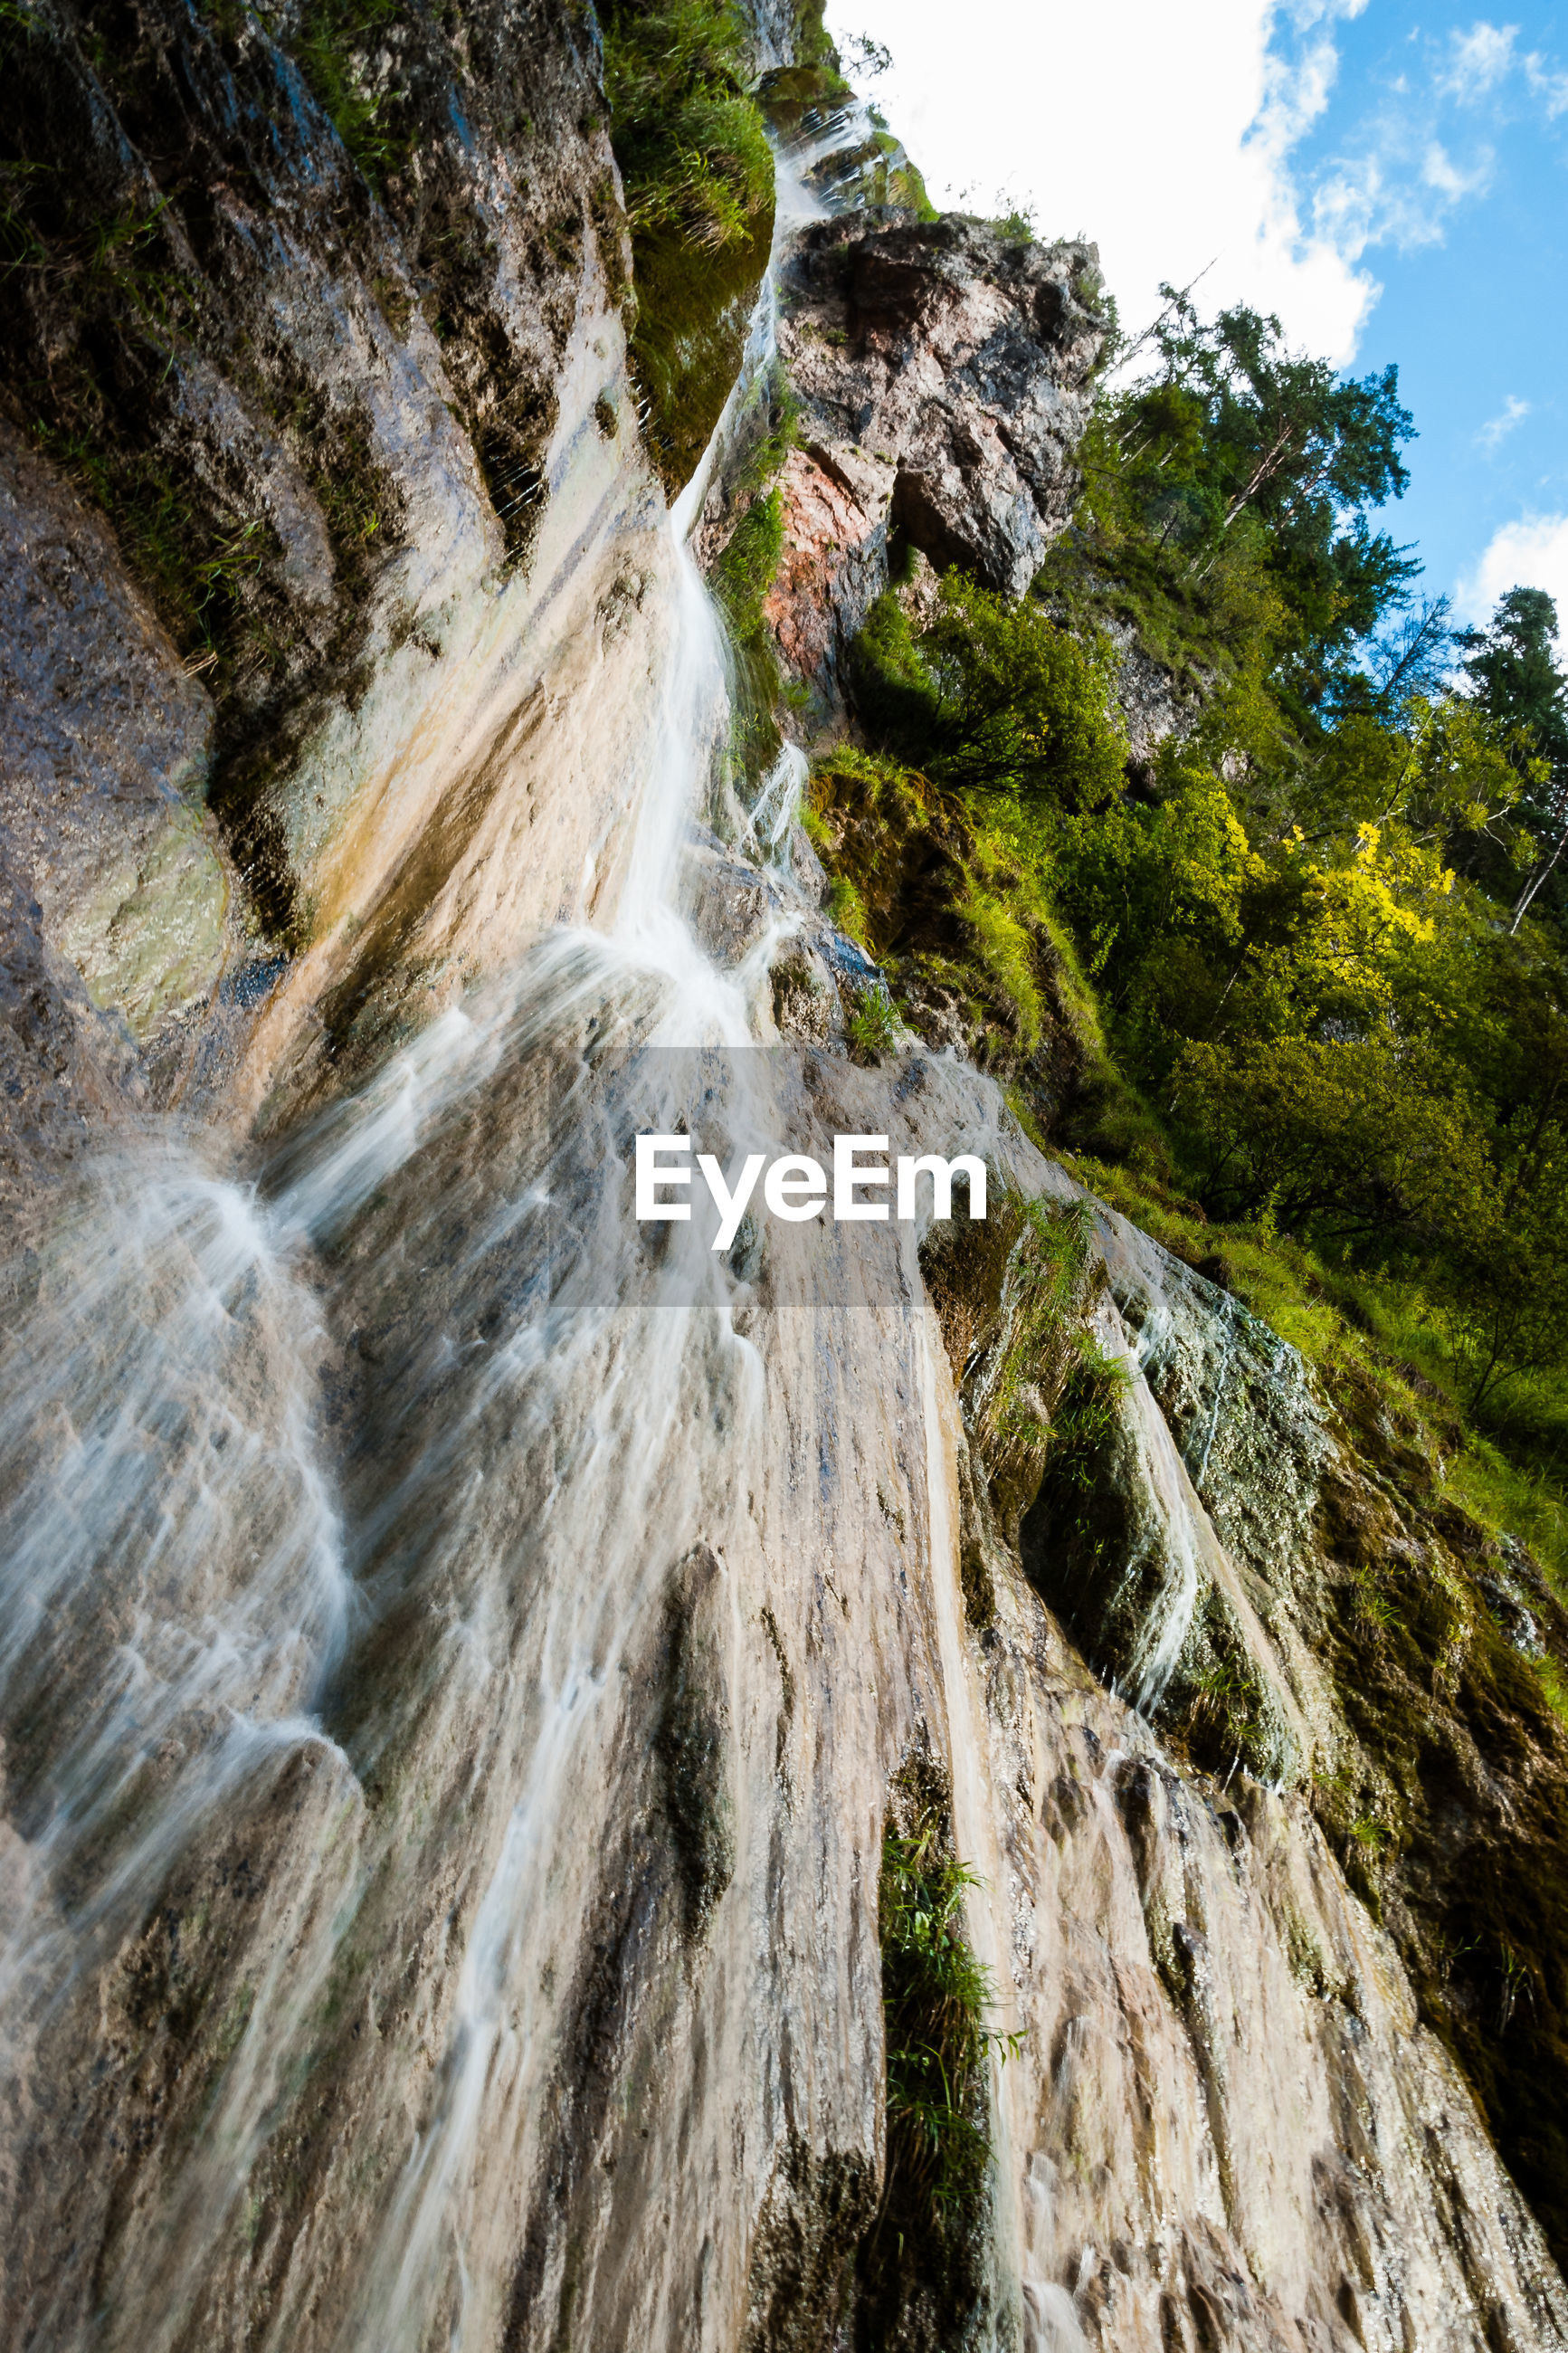 VIEW OF WATERFALL IN FOREST AGAINST SKY